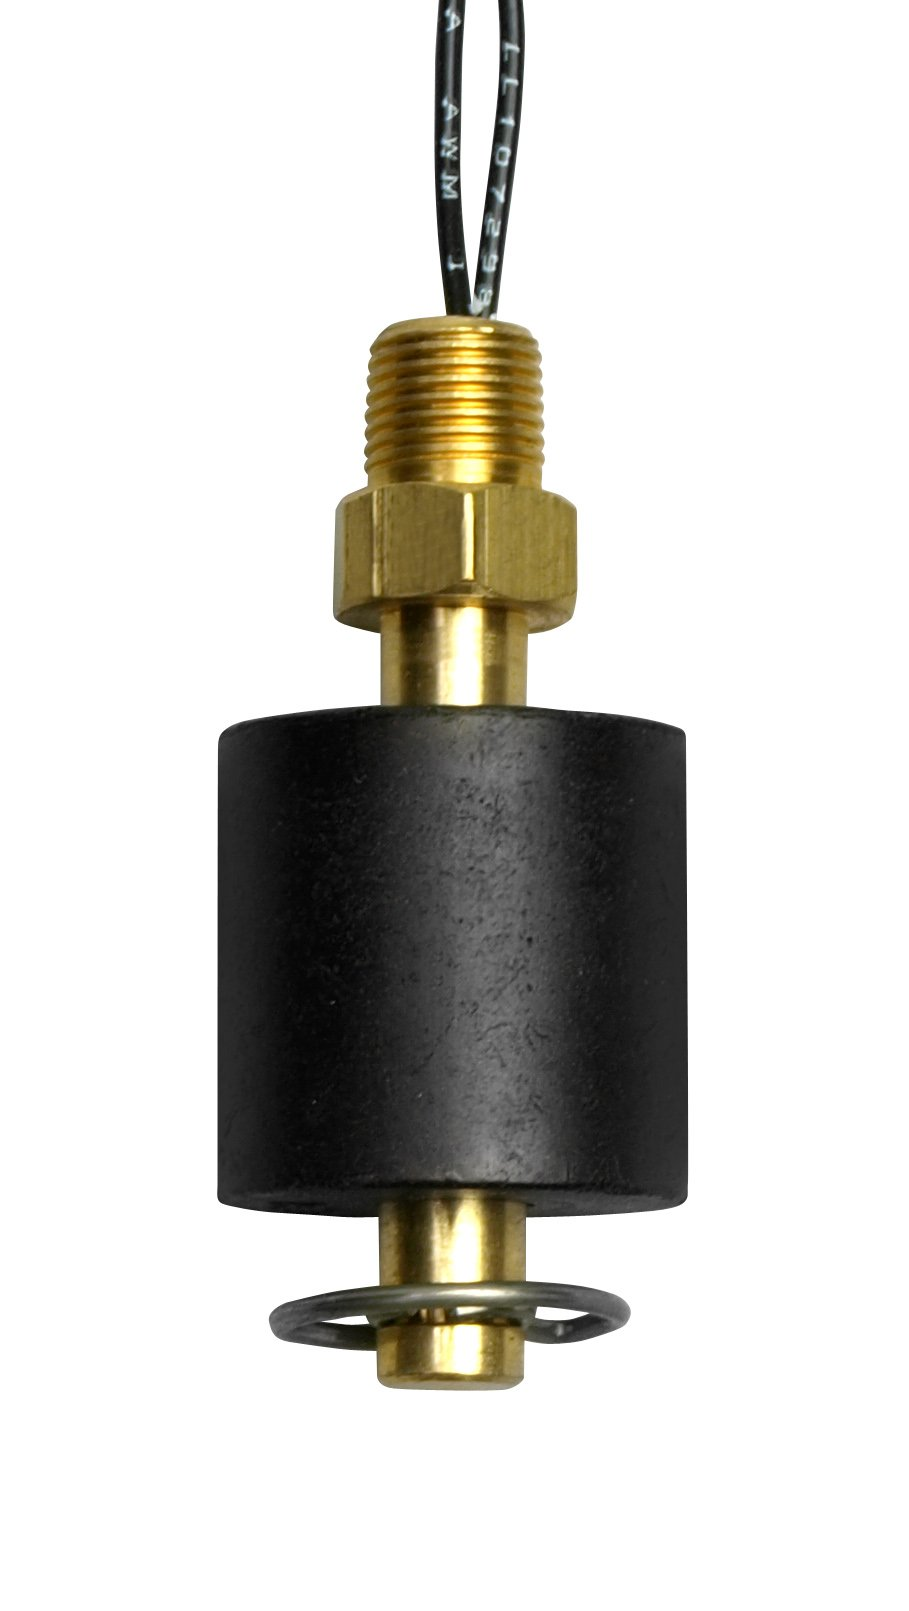 Madison M4500 Brass Miniature Liquid Level Switch, 30 VA SPST, 1/8'' NPT Male, 150 psig Pressure